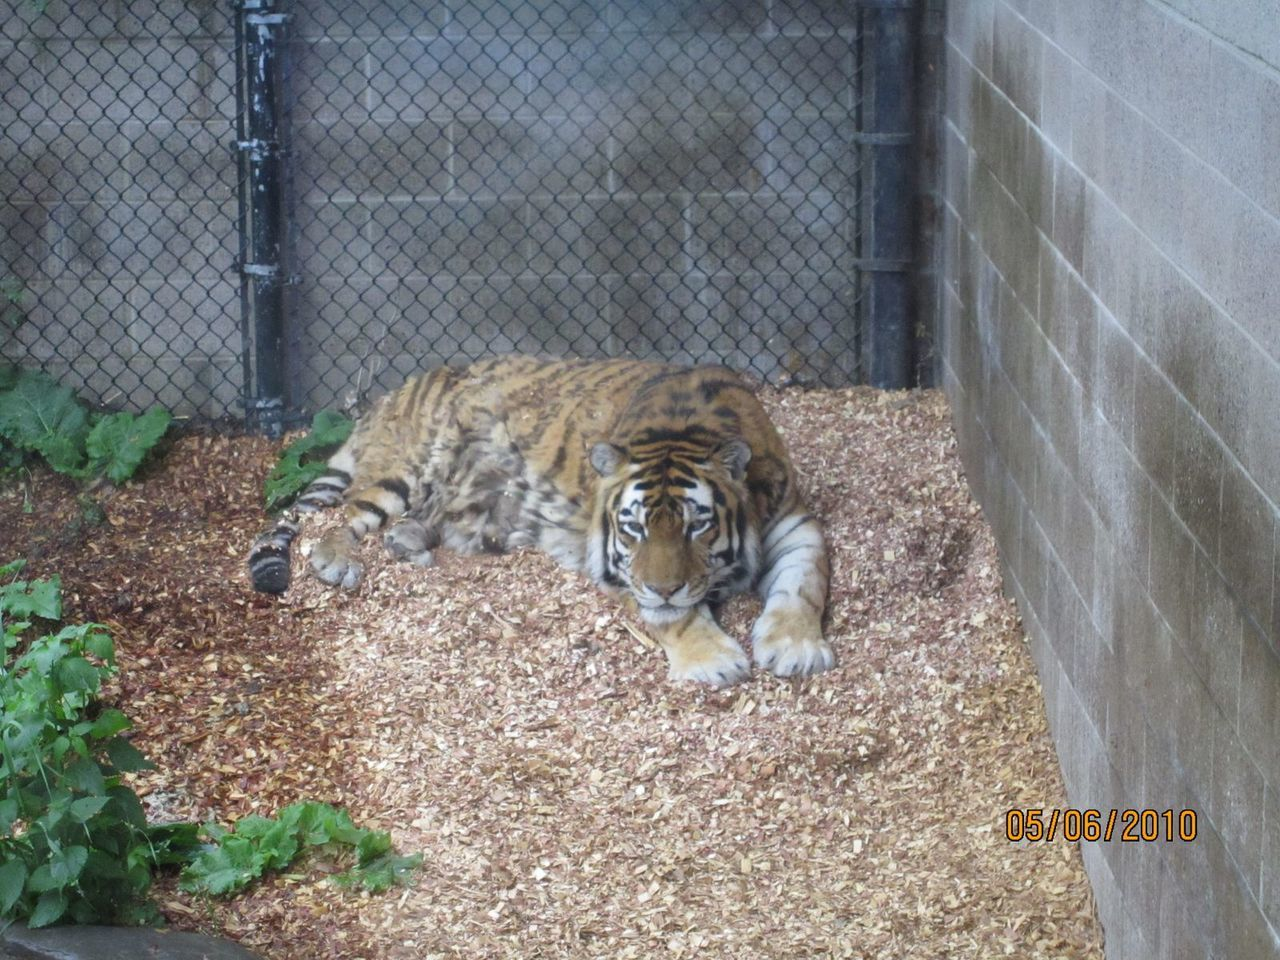 animal themes, one animal, tiger, feline, mammal, cage, zoo, day, relaxation, outdoors, animals in the wild, no people, nature